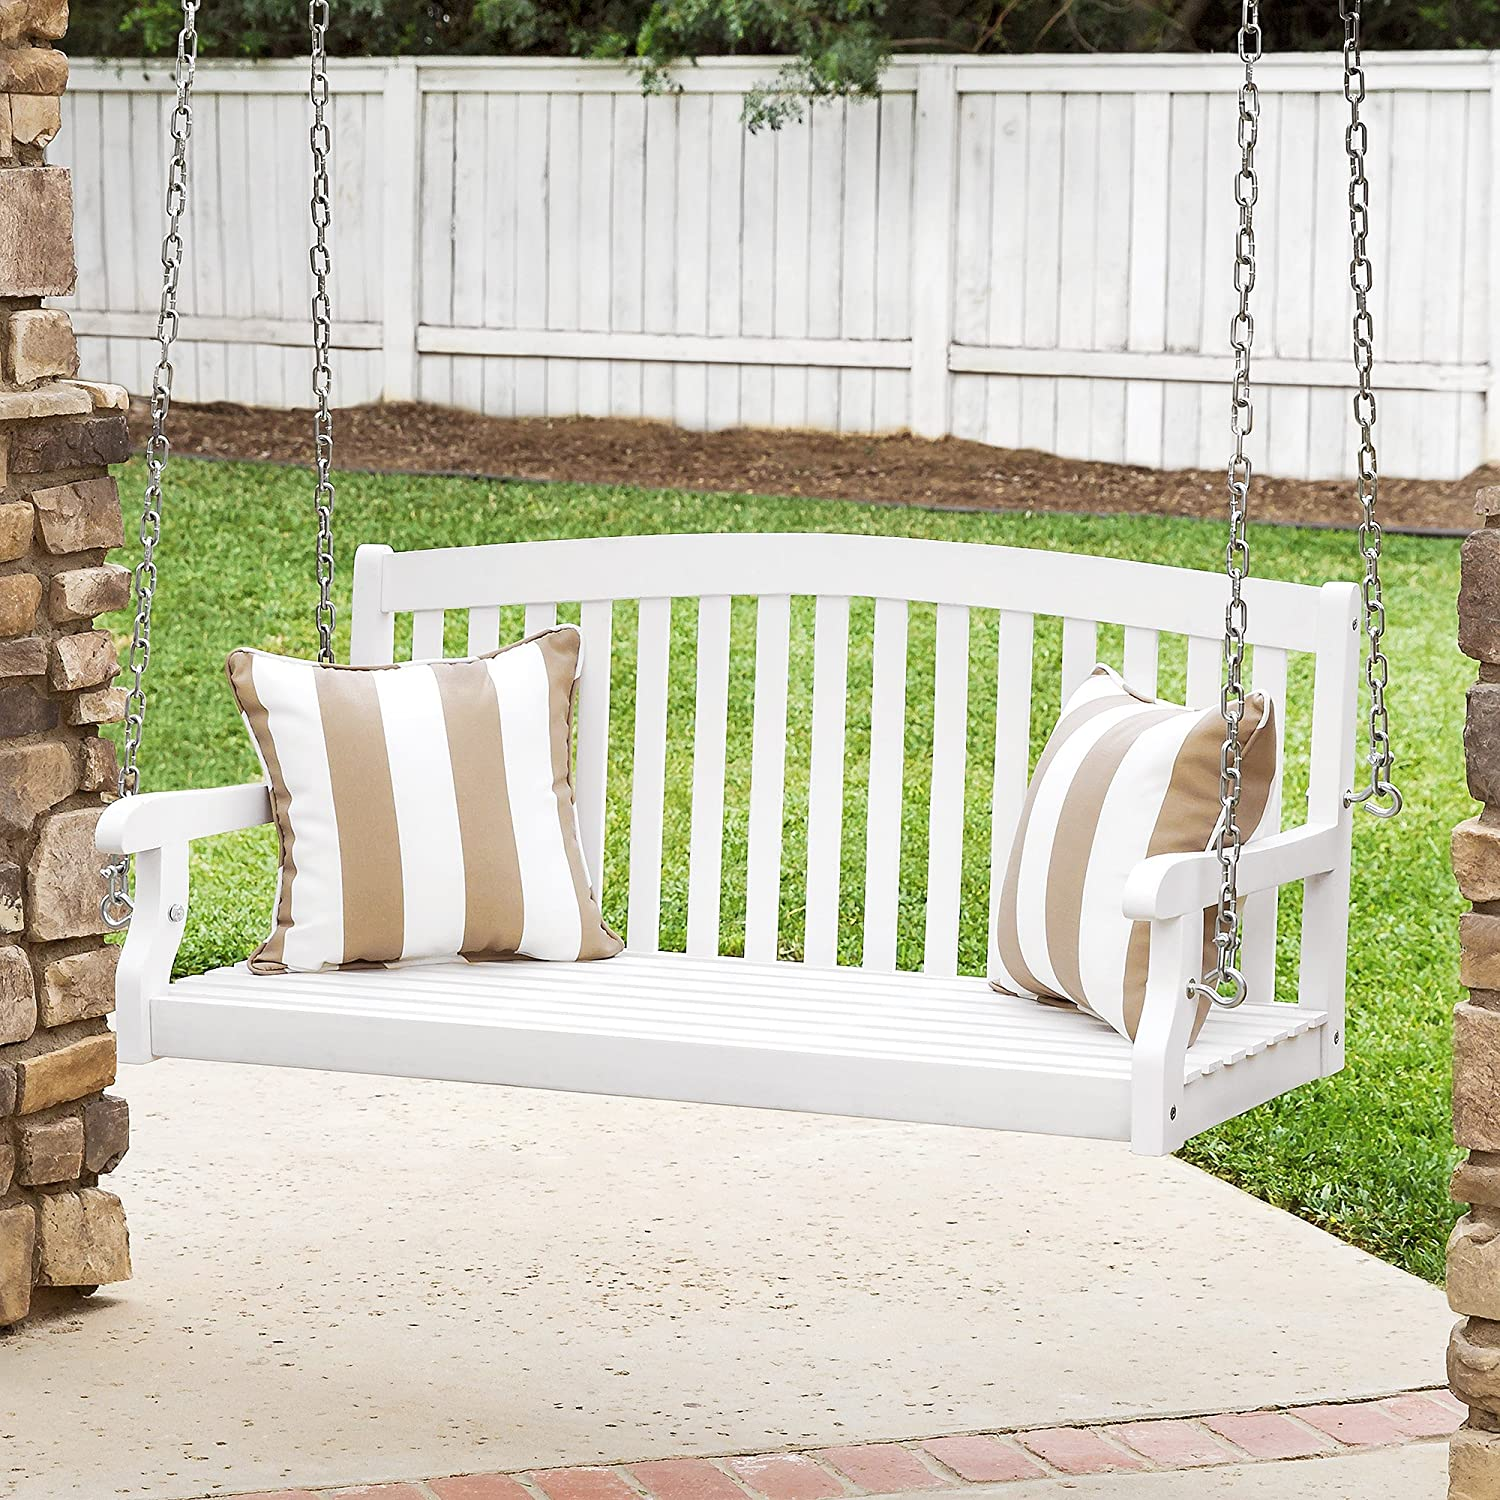 Best Choice Products 48-inch 3-Seater Wooden Curved Back Hanging Porch Swing Bench Conversation Furniture with Metal Chains for Backyard, Front Yard, Patio, Deck, Garden, White